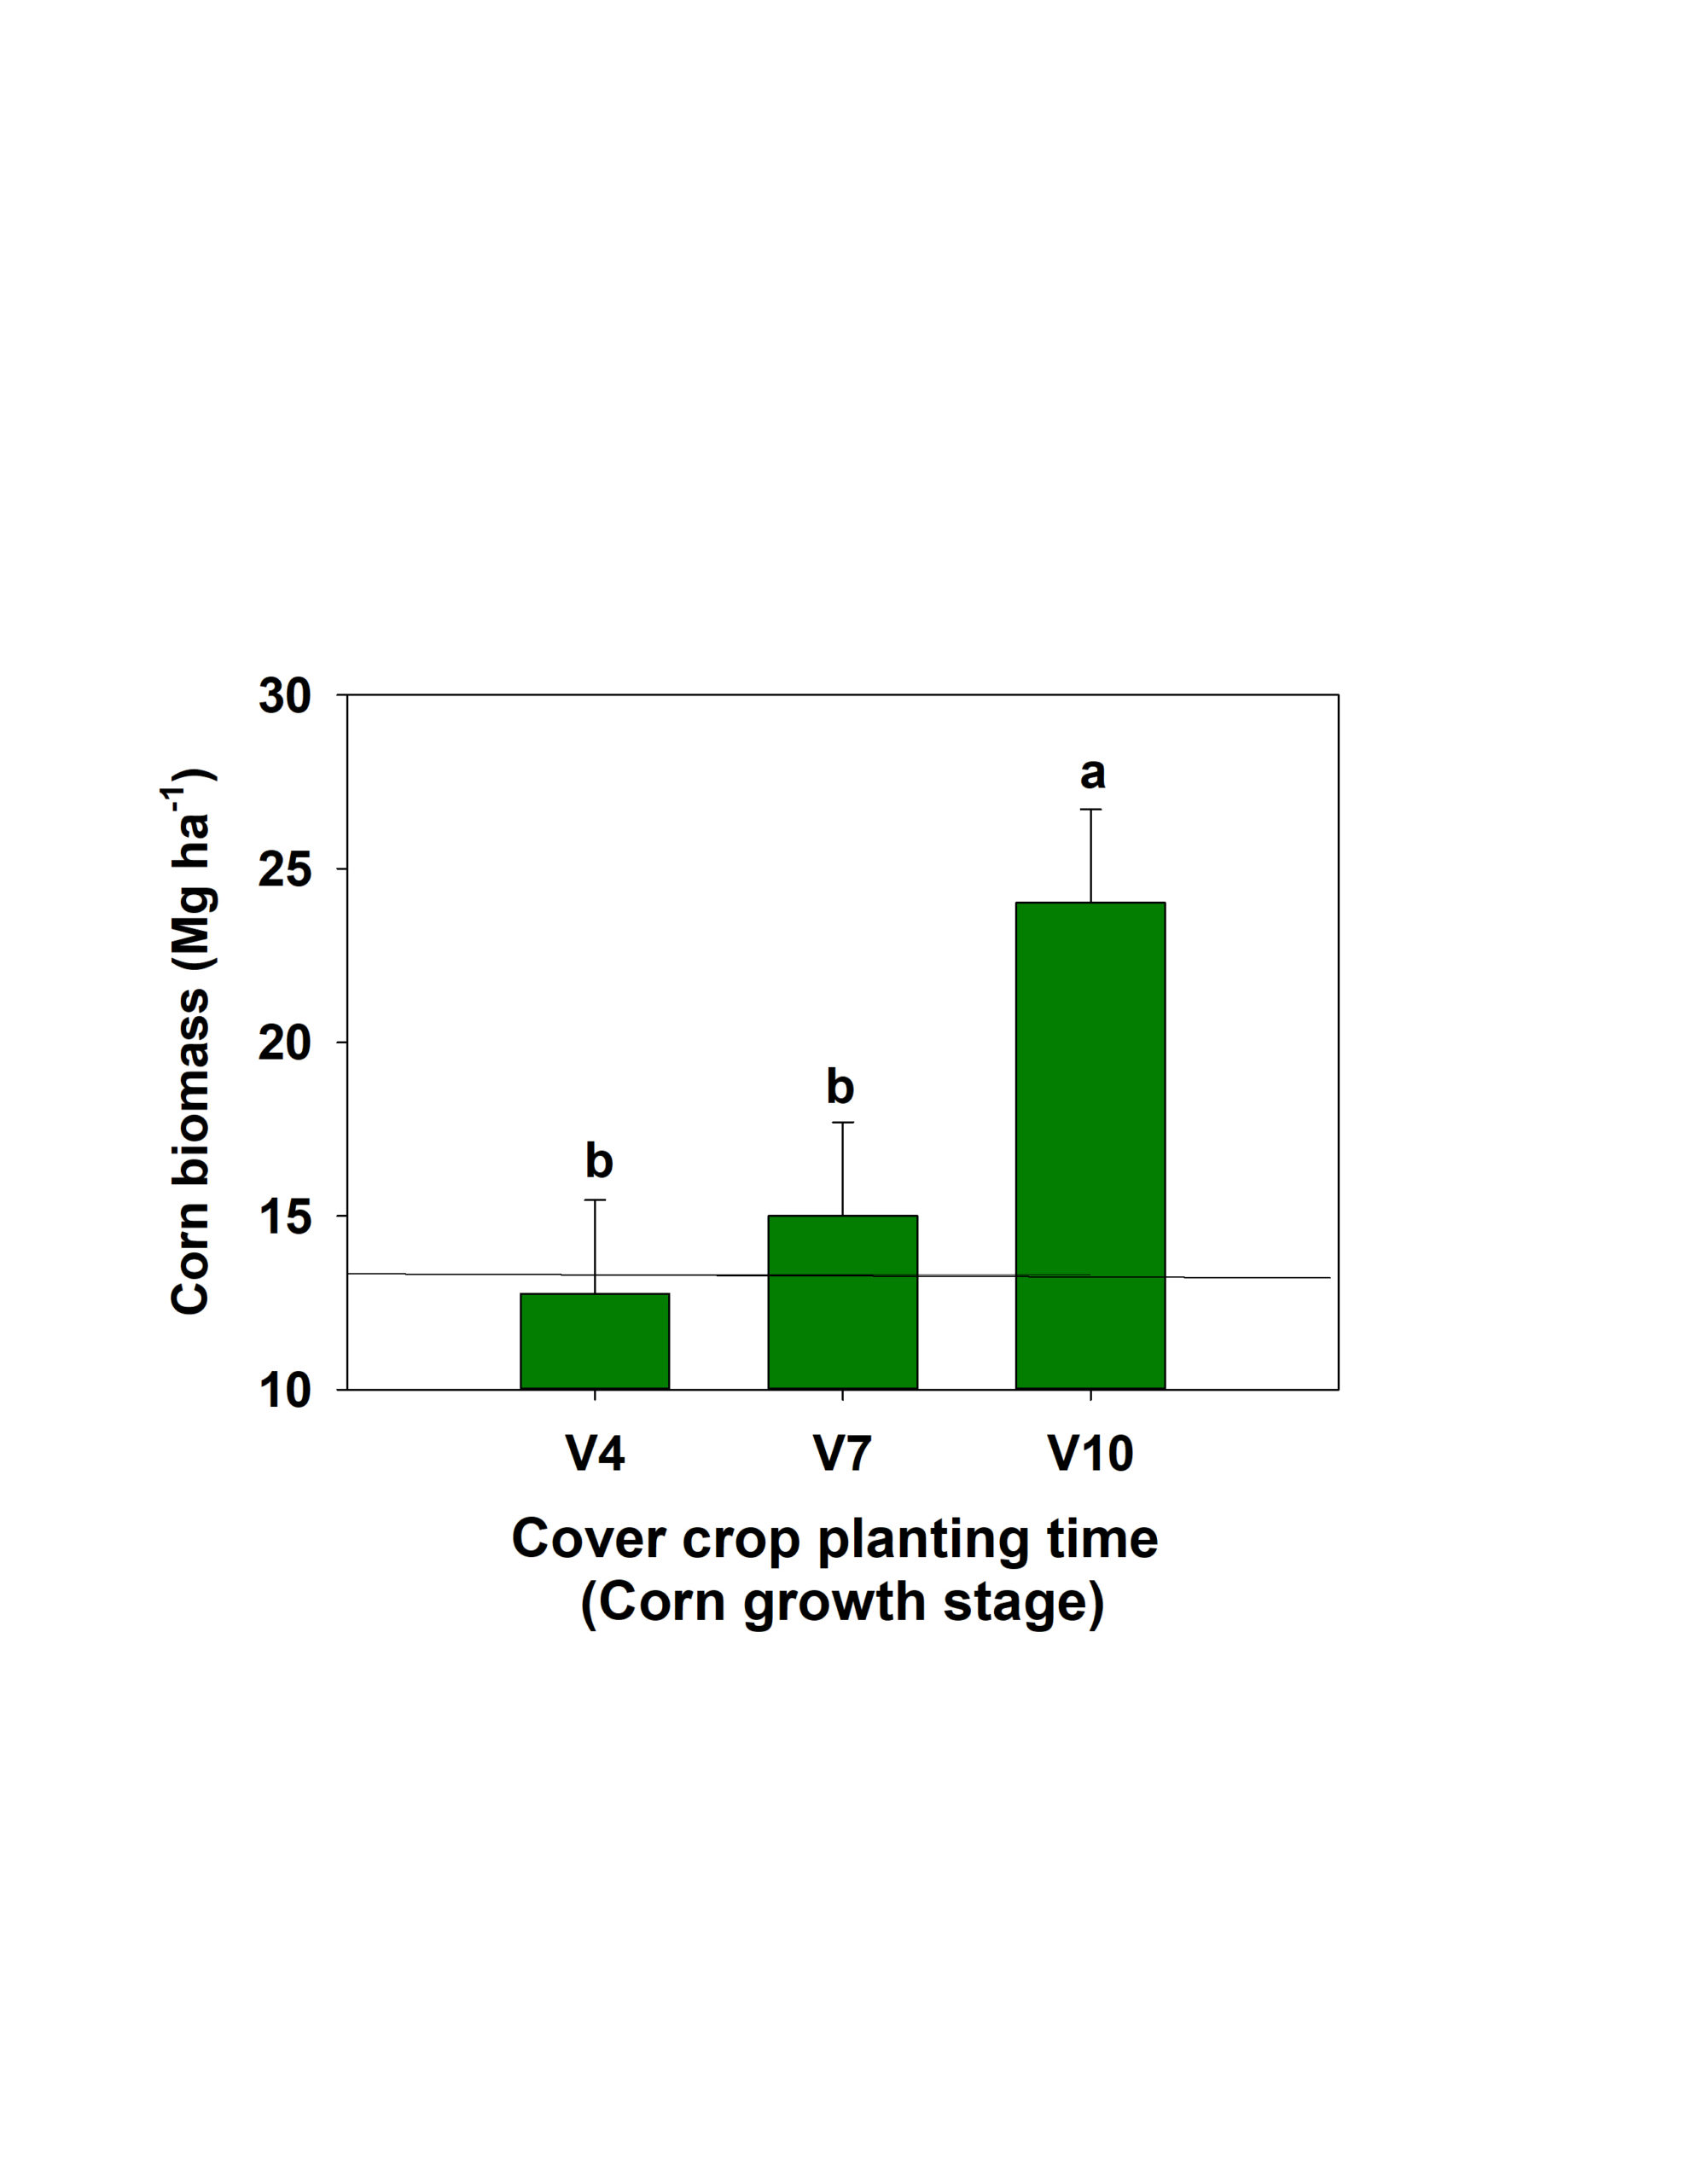 Figure 3. Effect of inter-seeded cover crops on silage corn biomass production